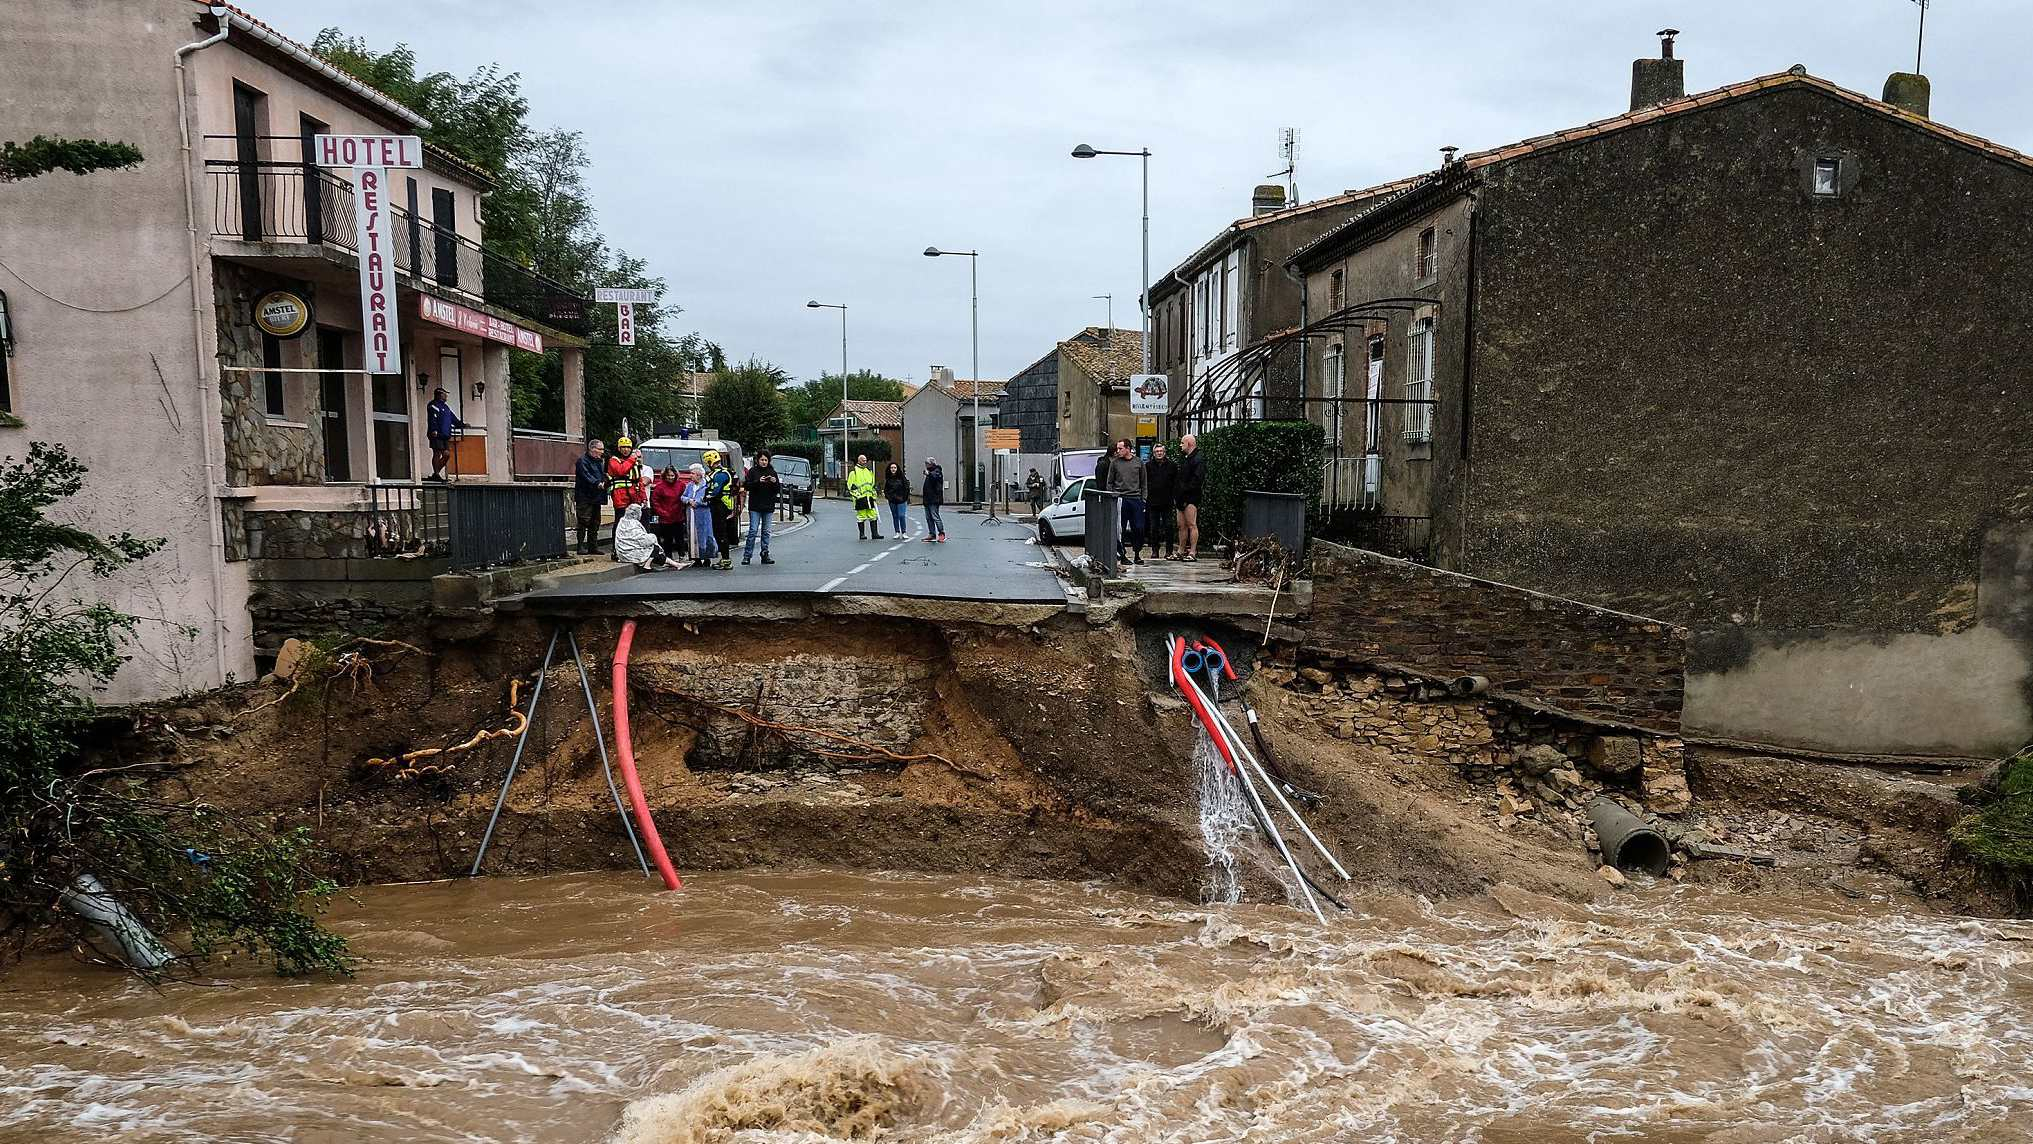 At least 13 killed by flash floods in SW France